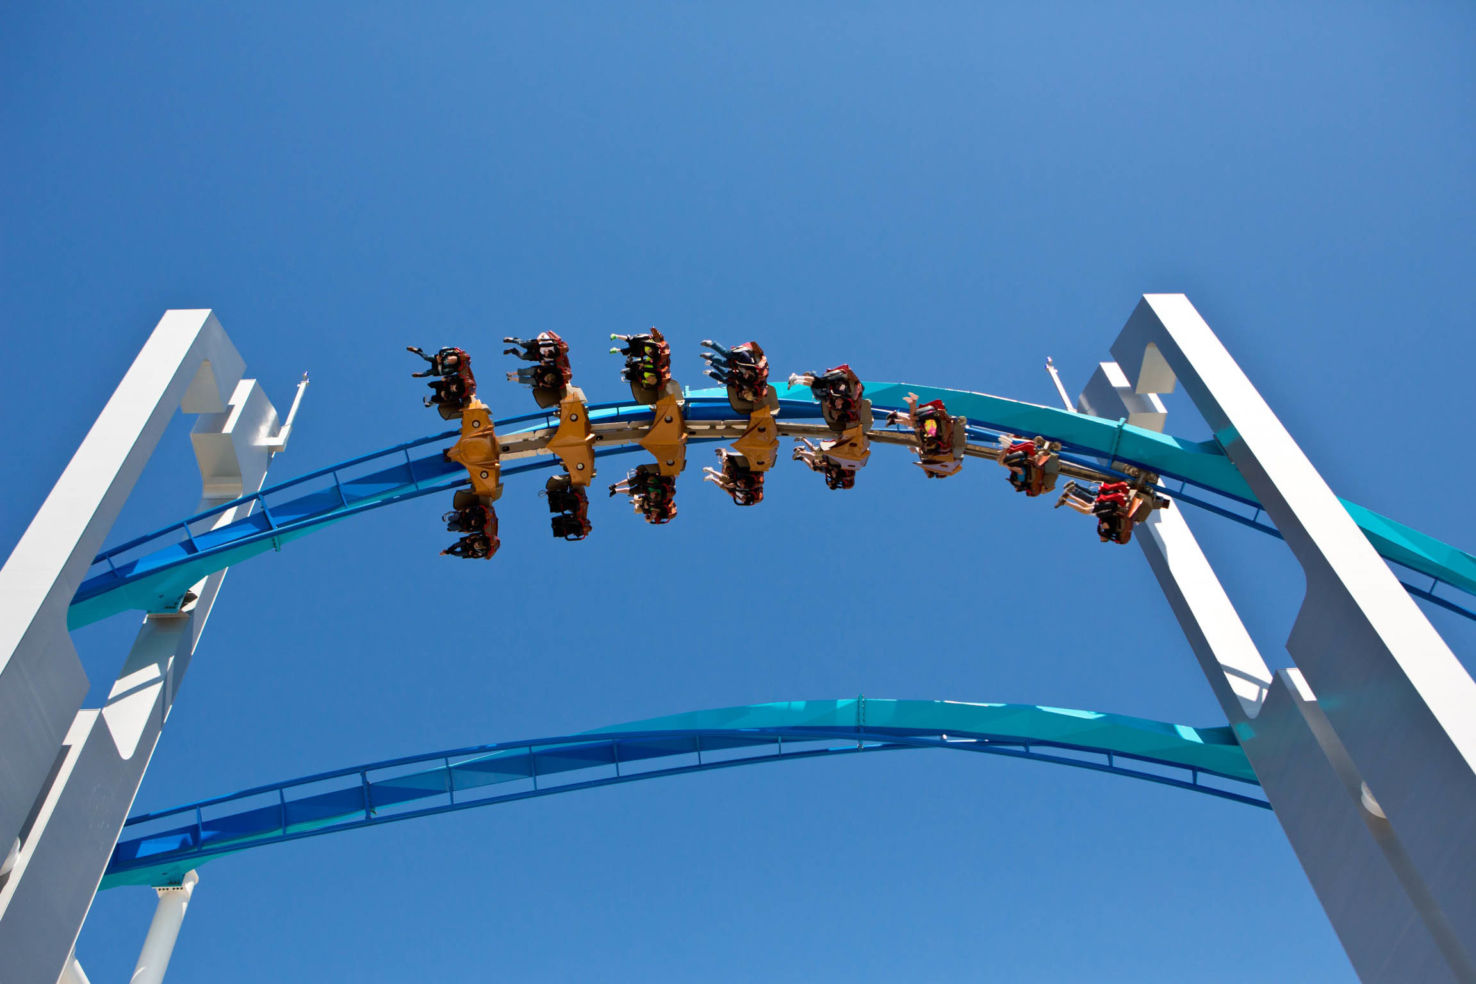 Gatekeeper at Cedar Point, OH